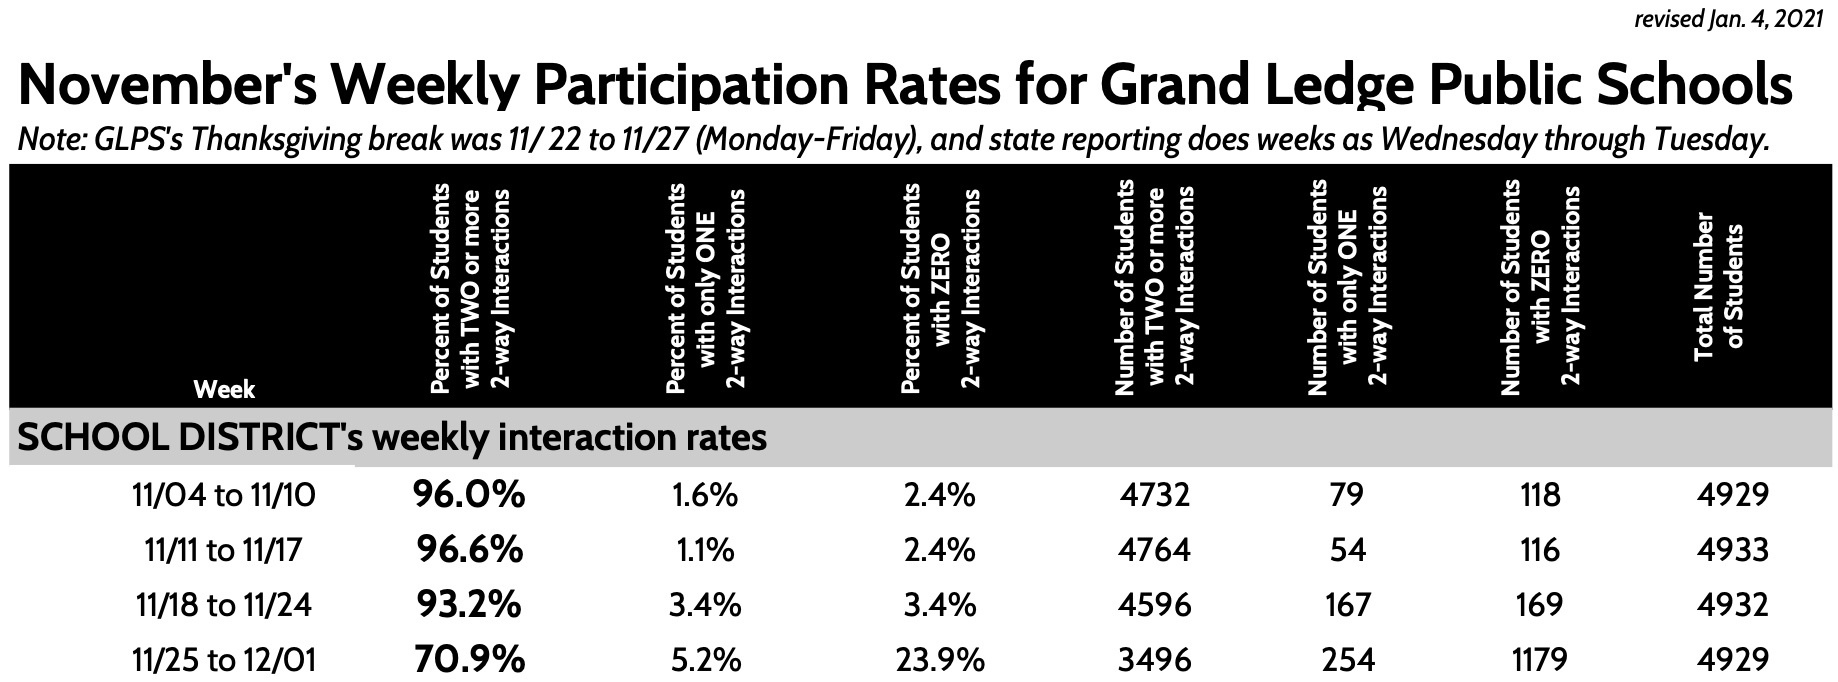 November's Weekly Participation Rates